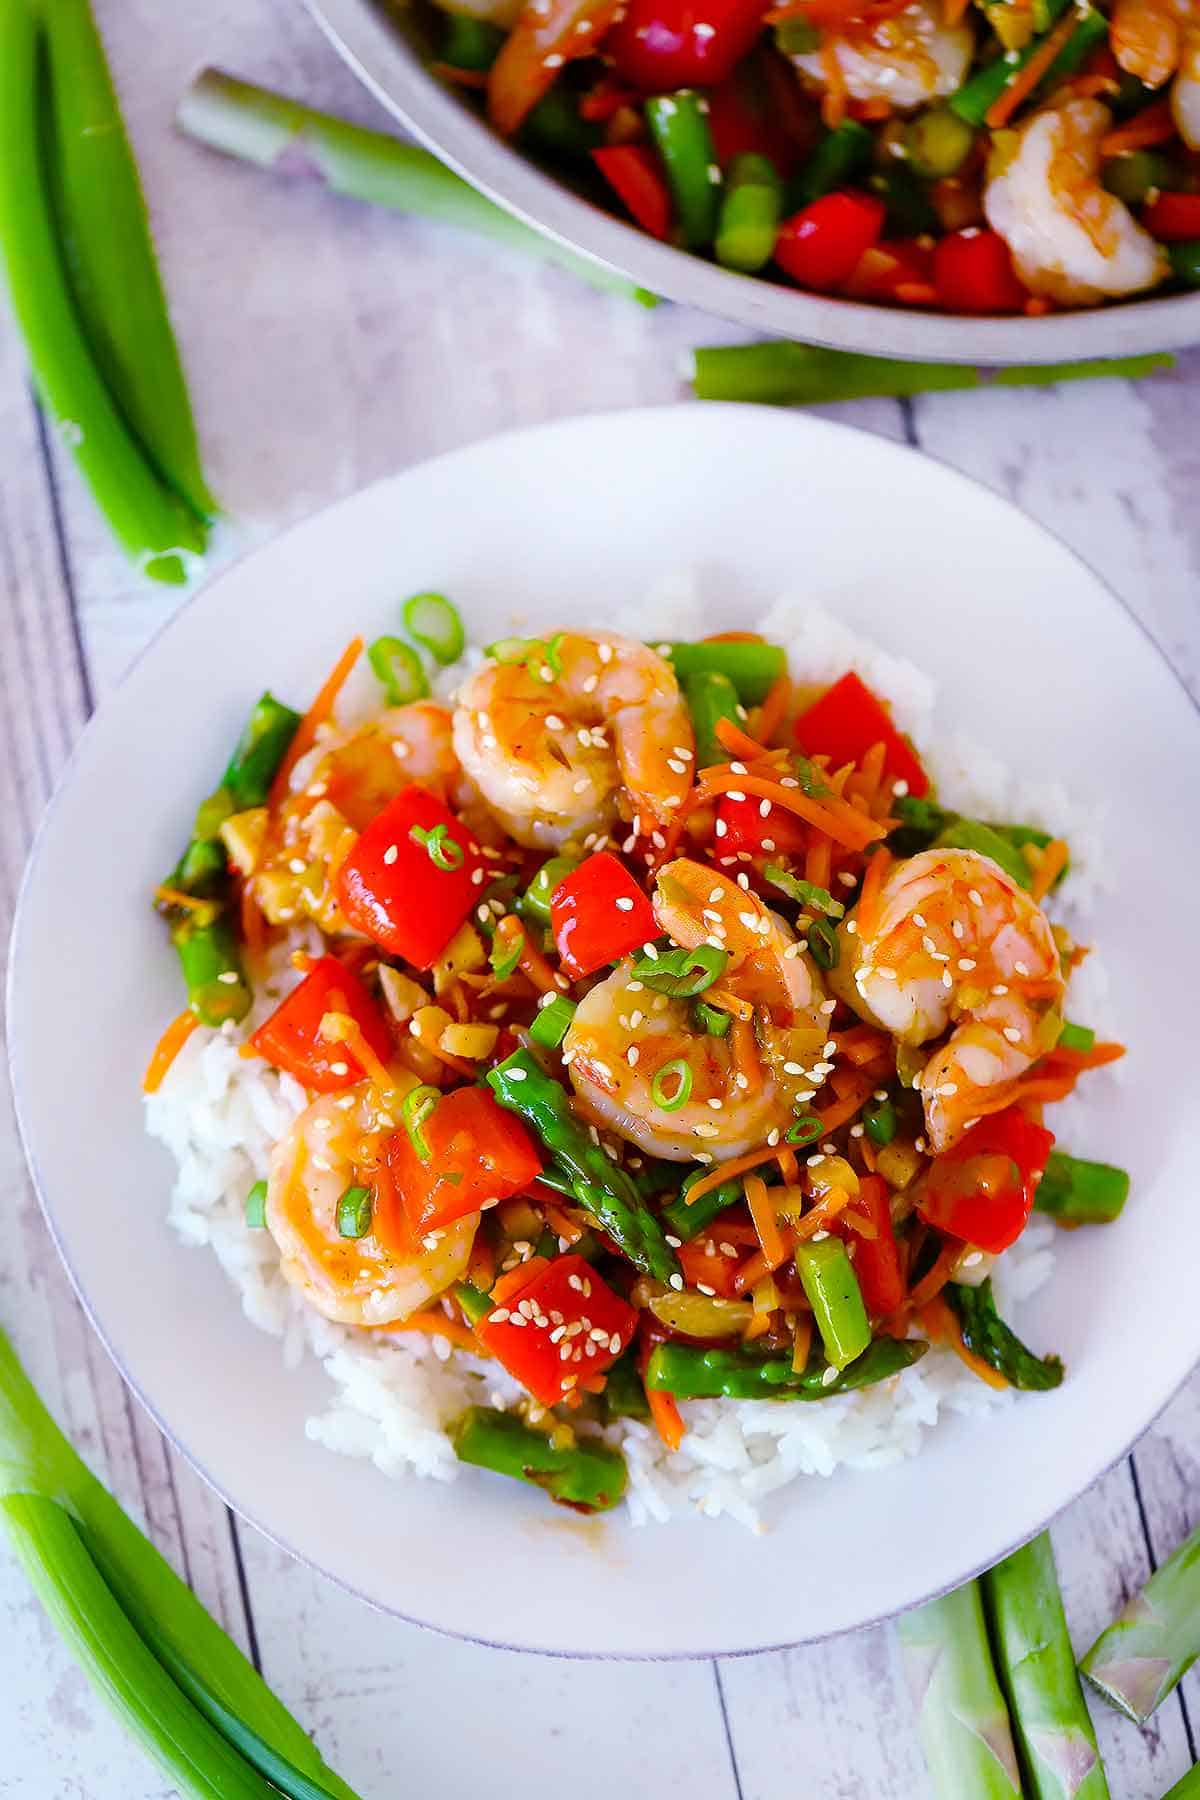 An overhead photo of a white plate with rice and shrimp stir fry on it.